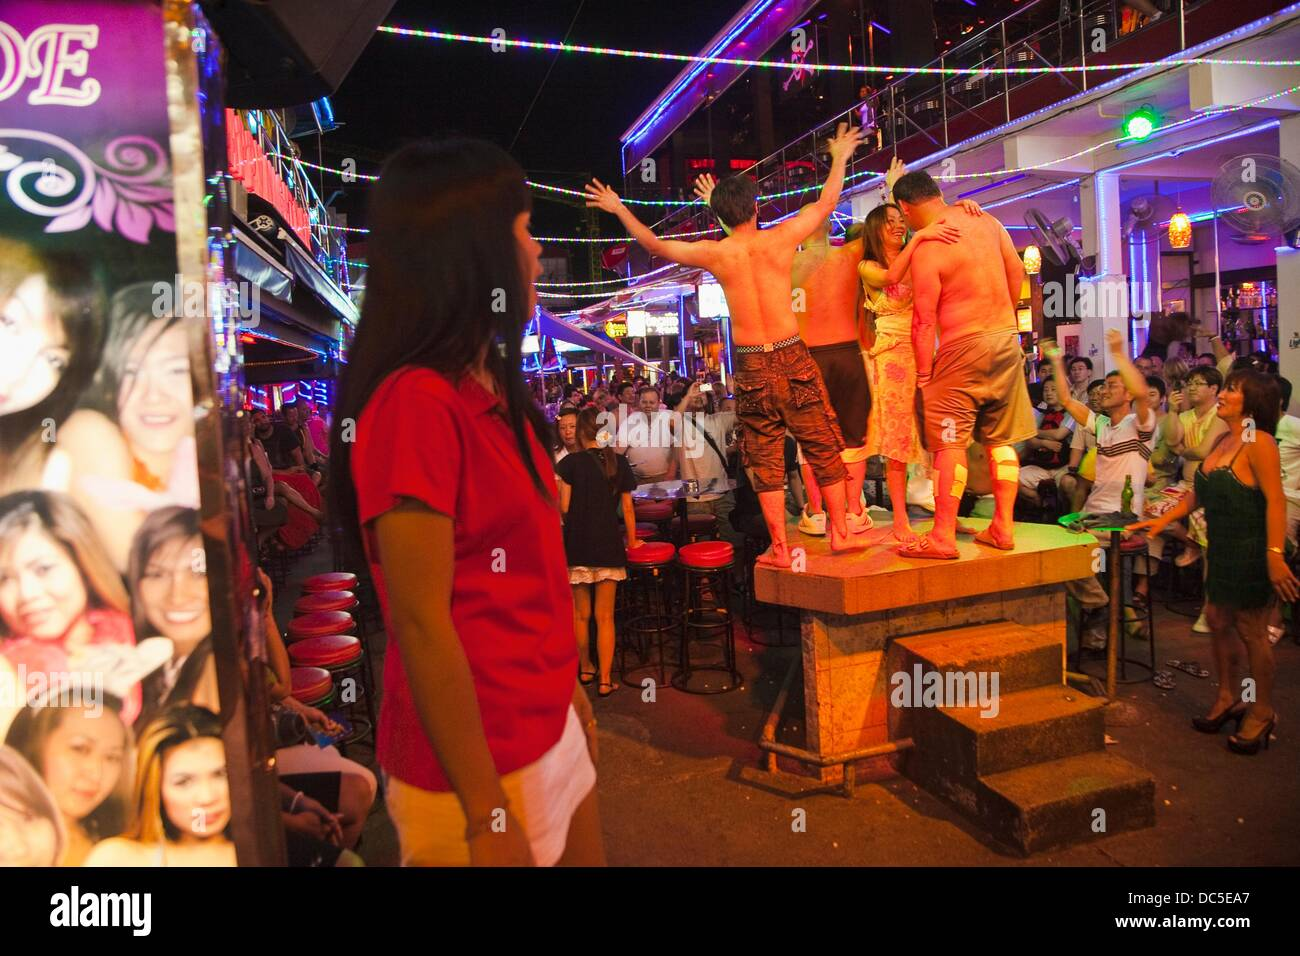 Nightlife  Lady and ladyboys  Blanga Street  Patong  Phuket  Thailand. - Stock Image